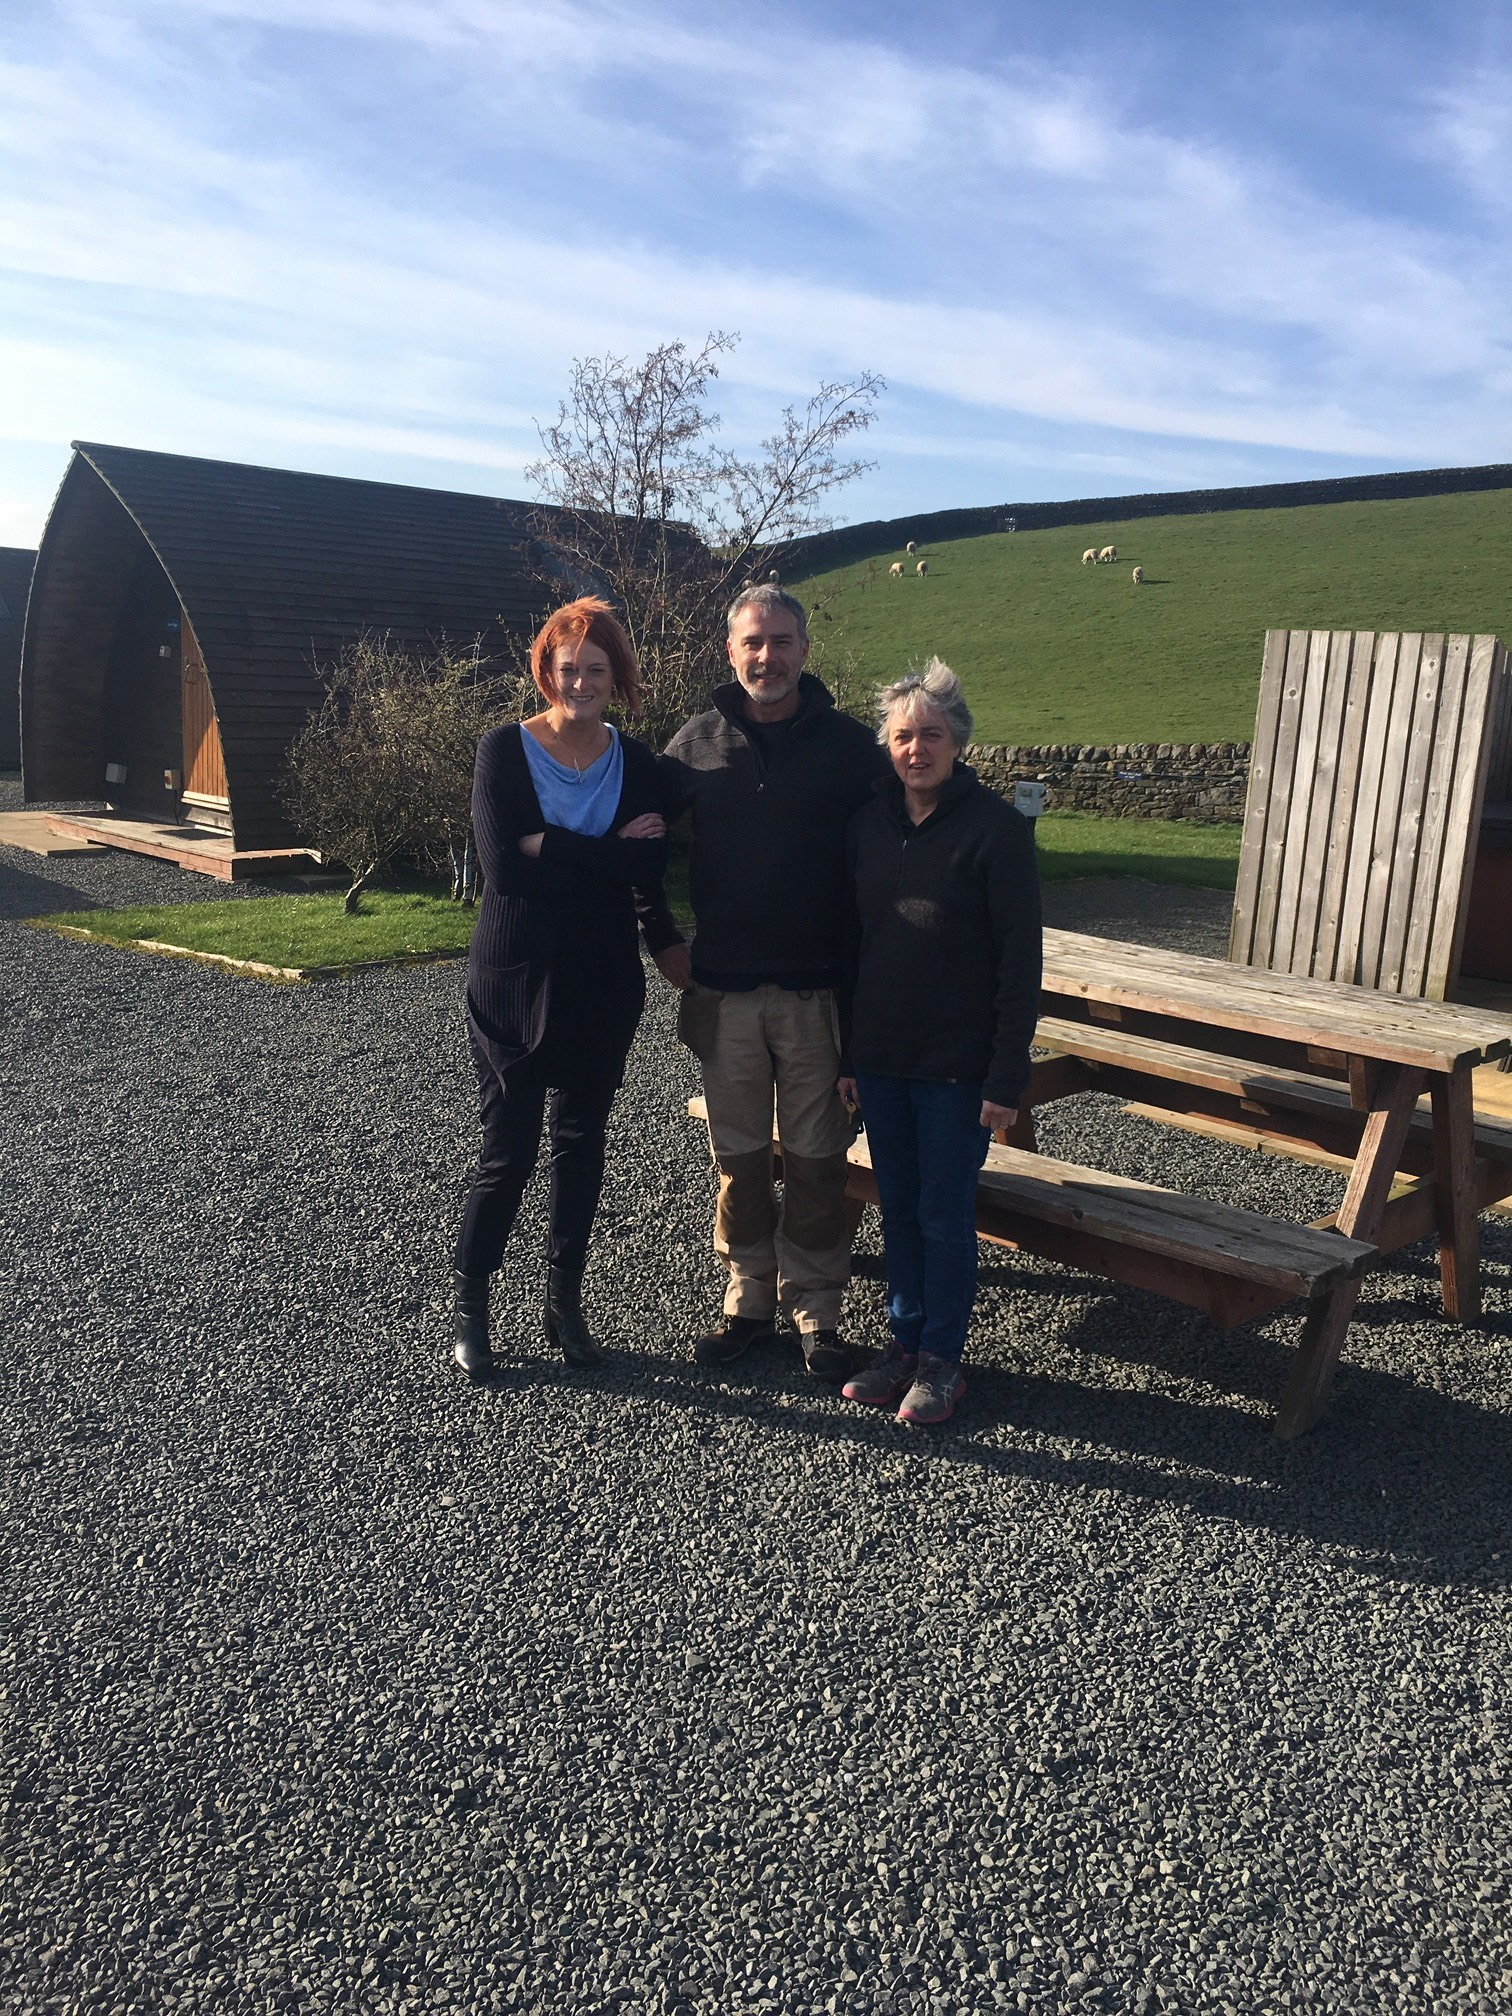 WCF managing director, Jo Ritzema, with Herding Hill Farm site managers Phil and Sue Humphreys.